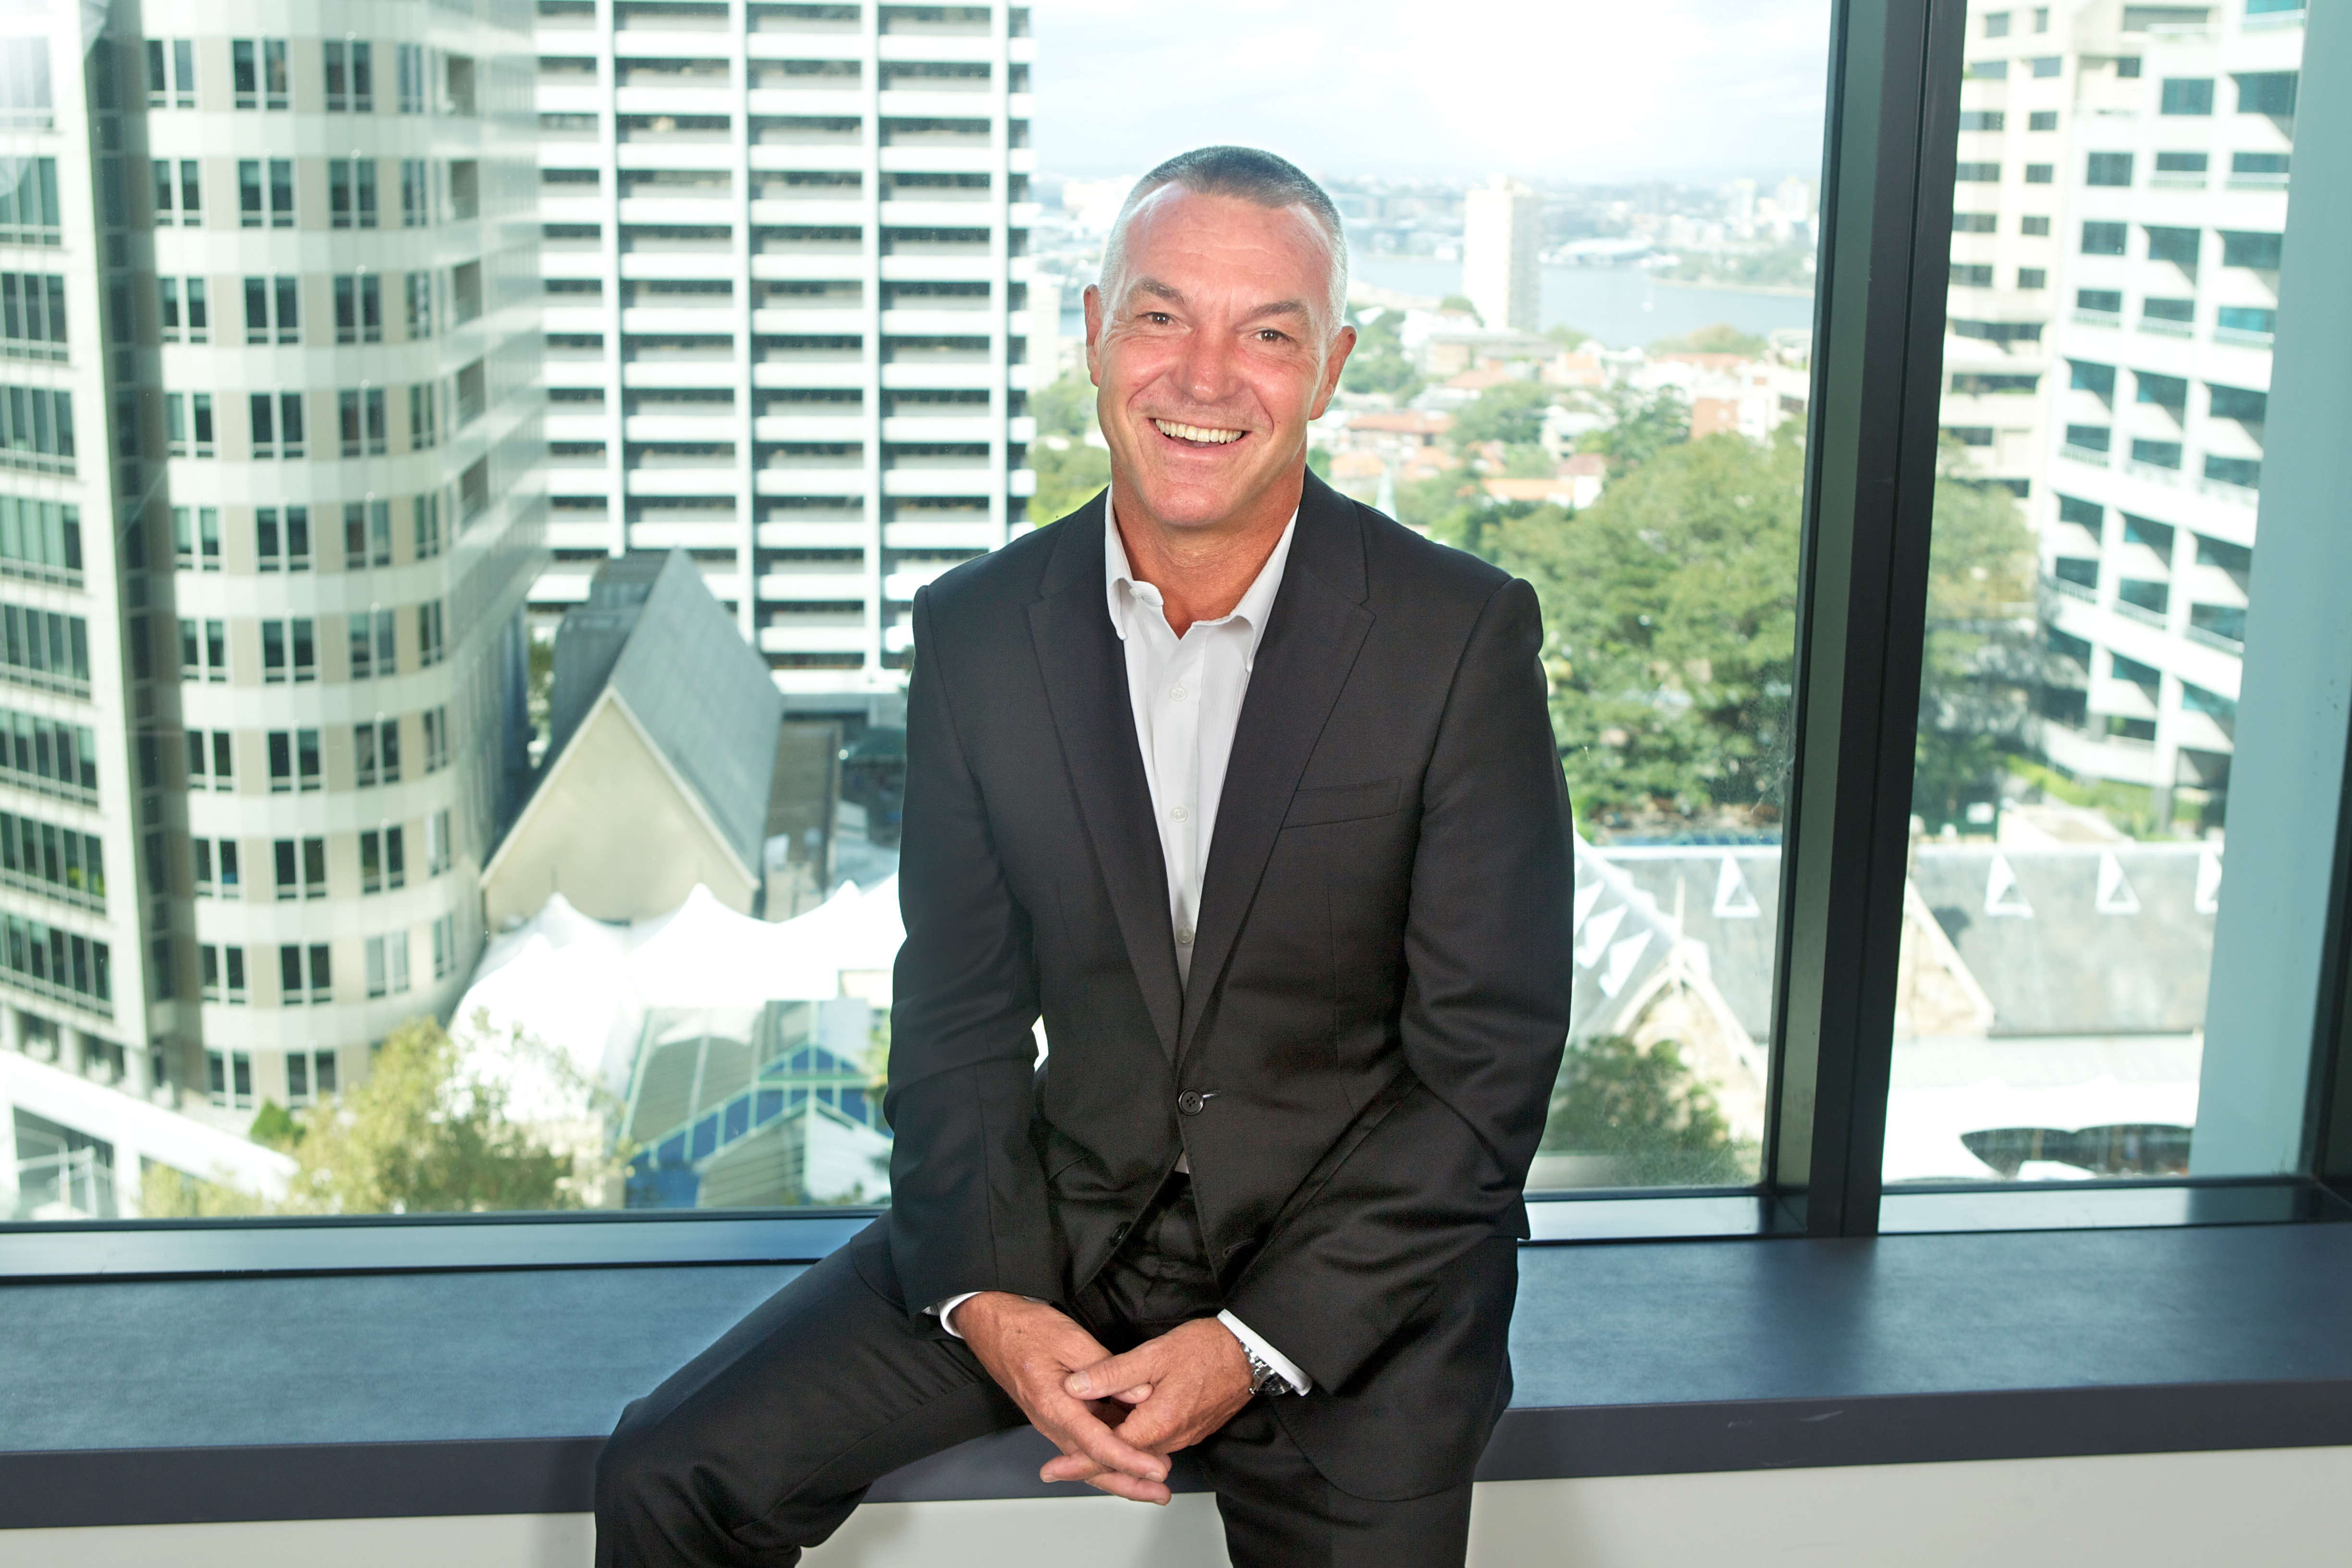 David Sykes, Business Leader at Sophos Australia